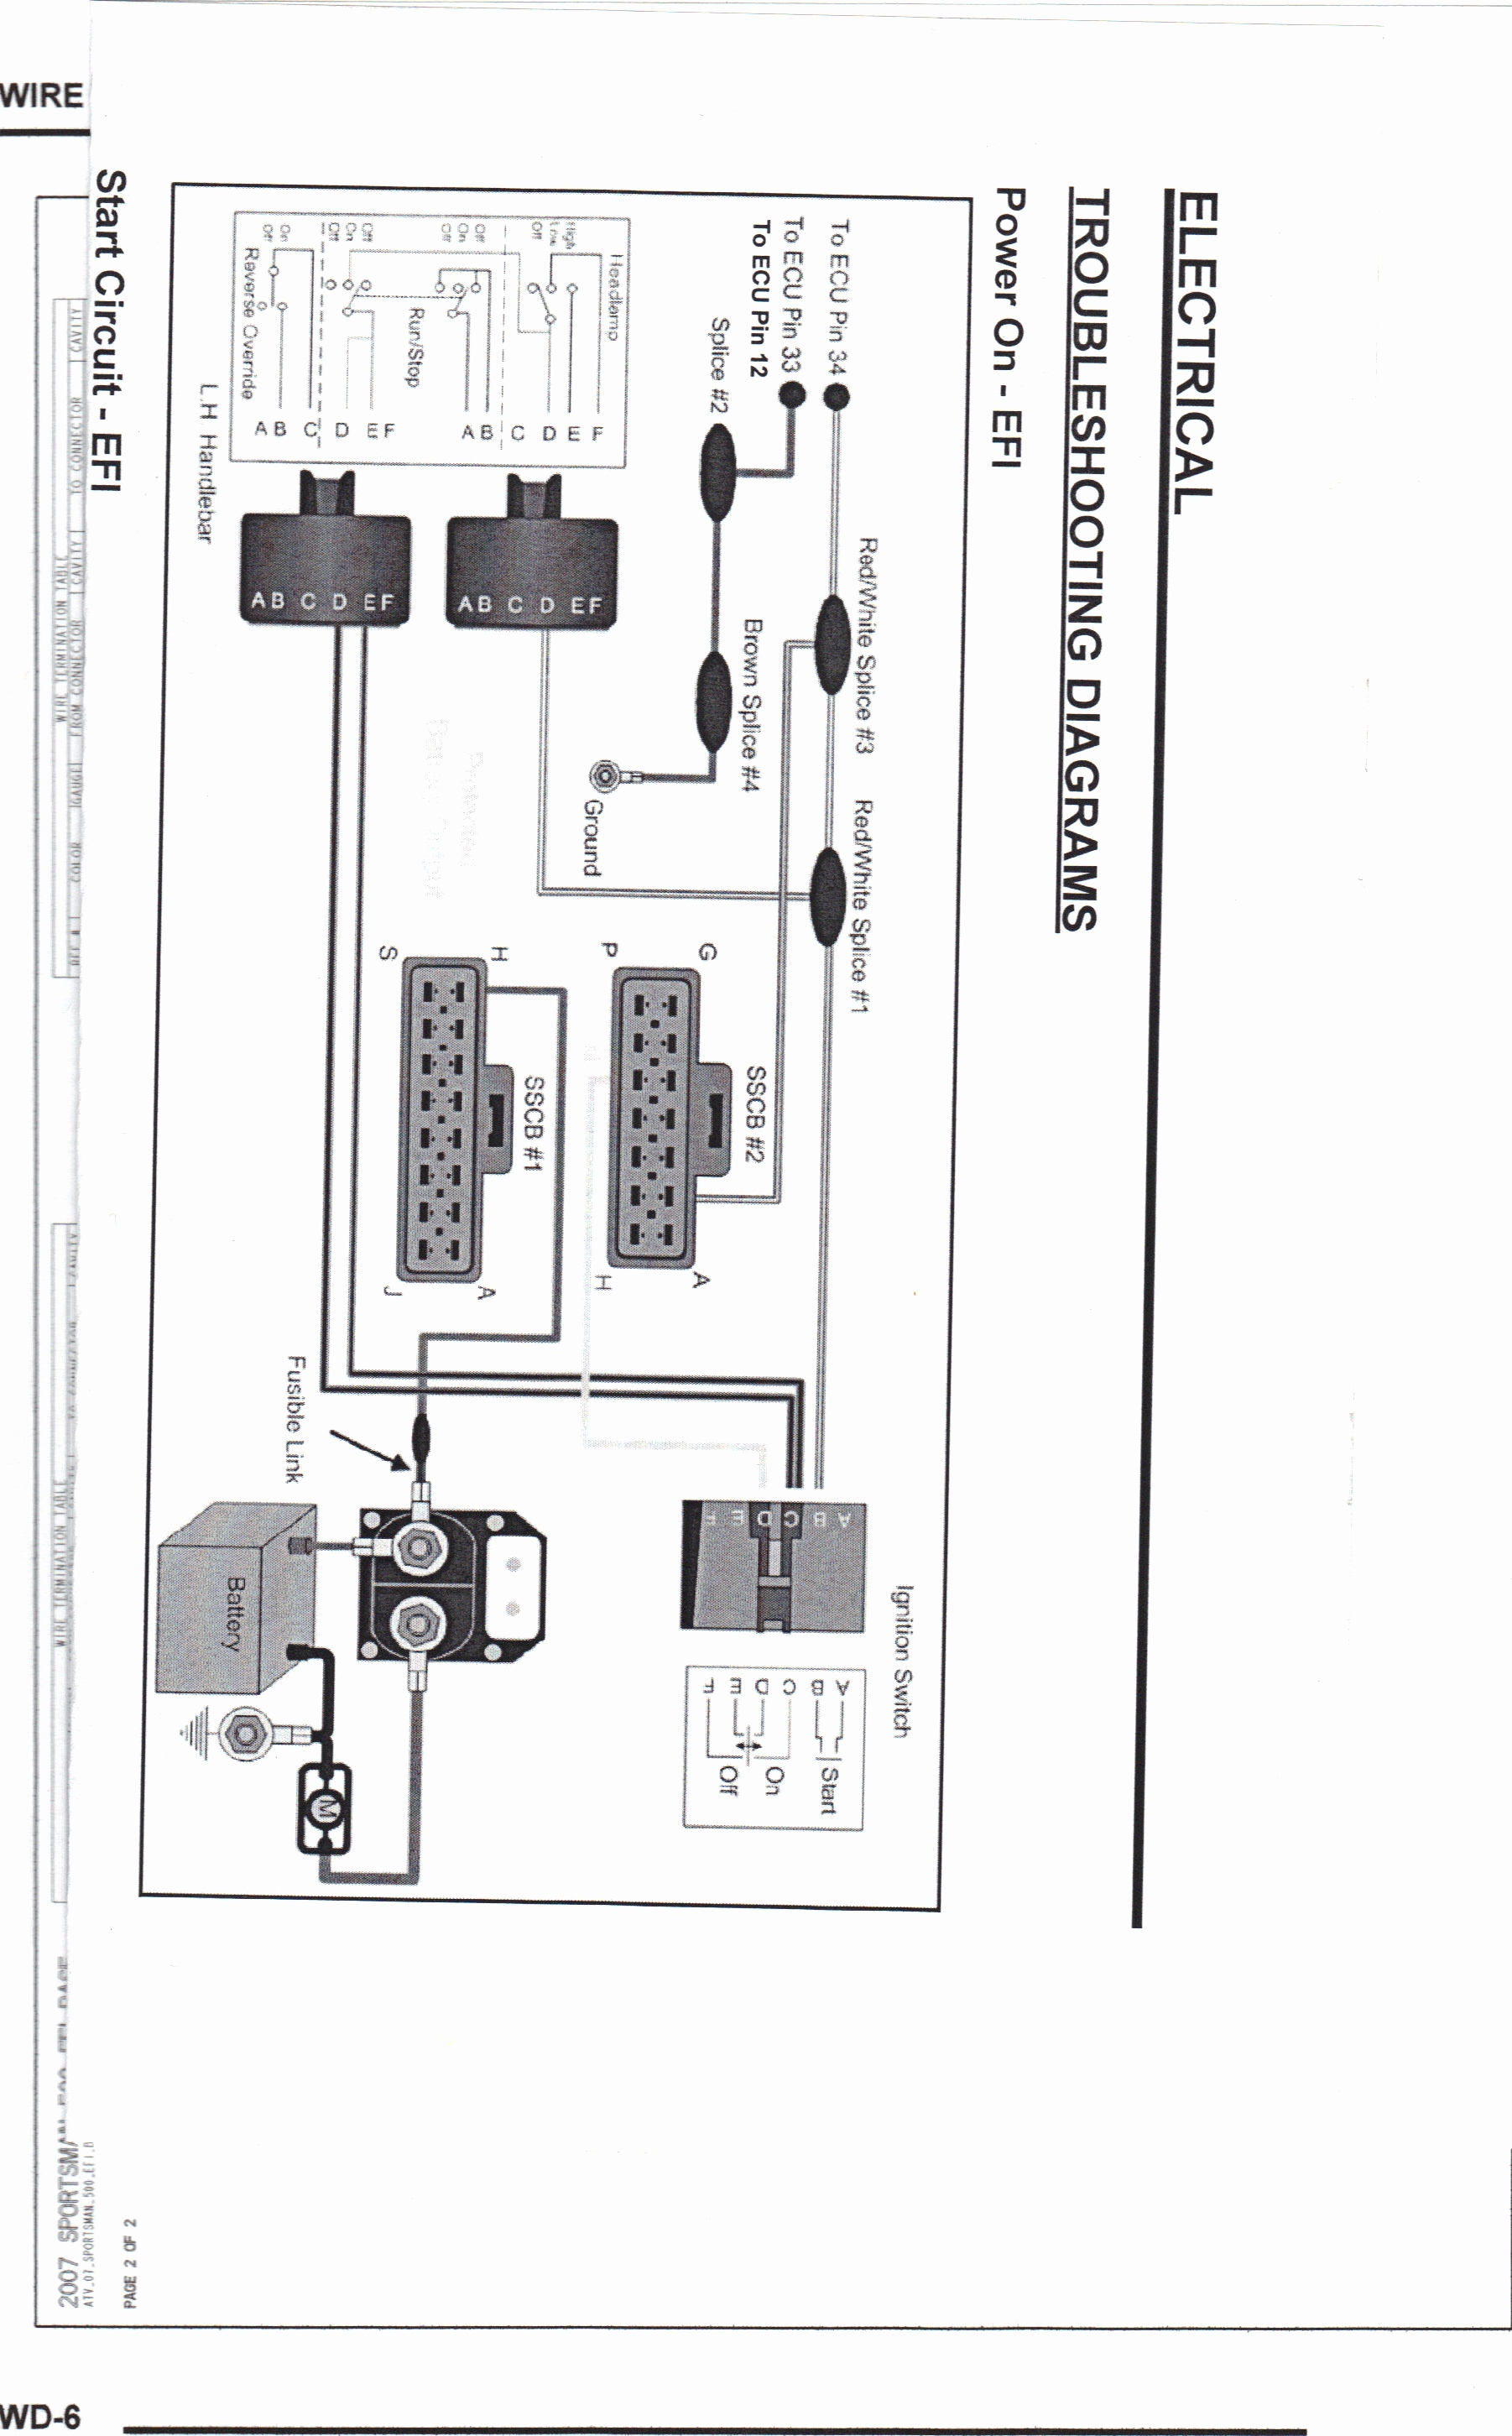 06 Polaris Ranger 700 Xp Wiring Diagram